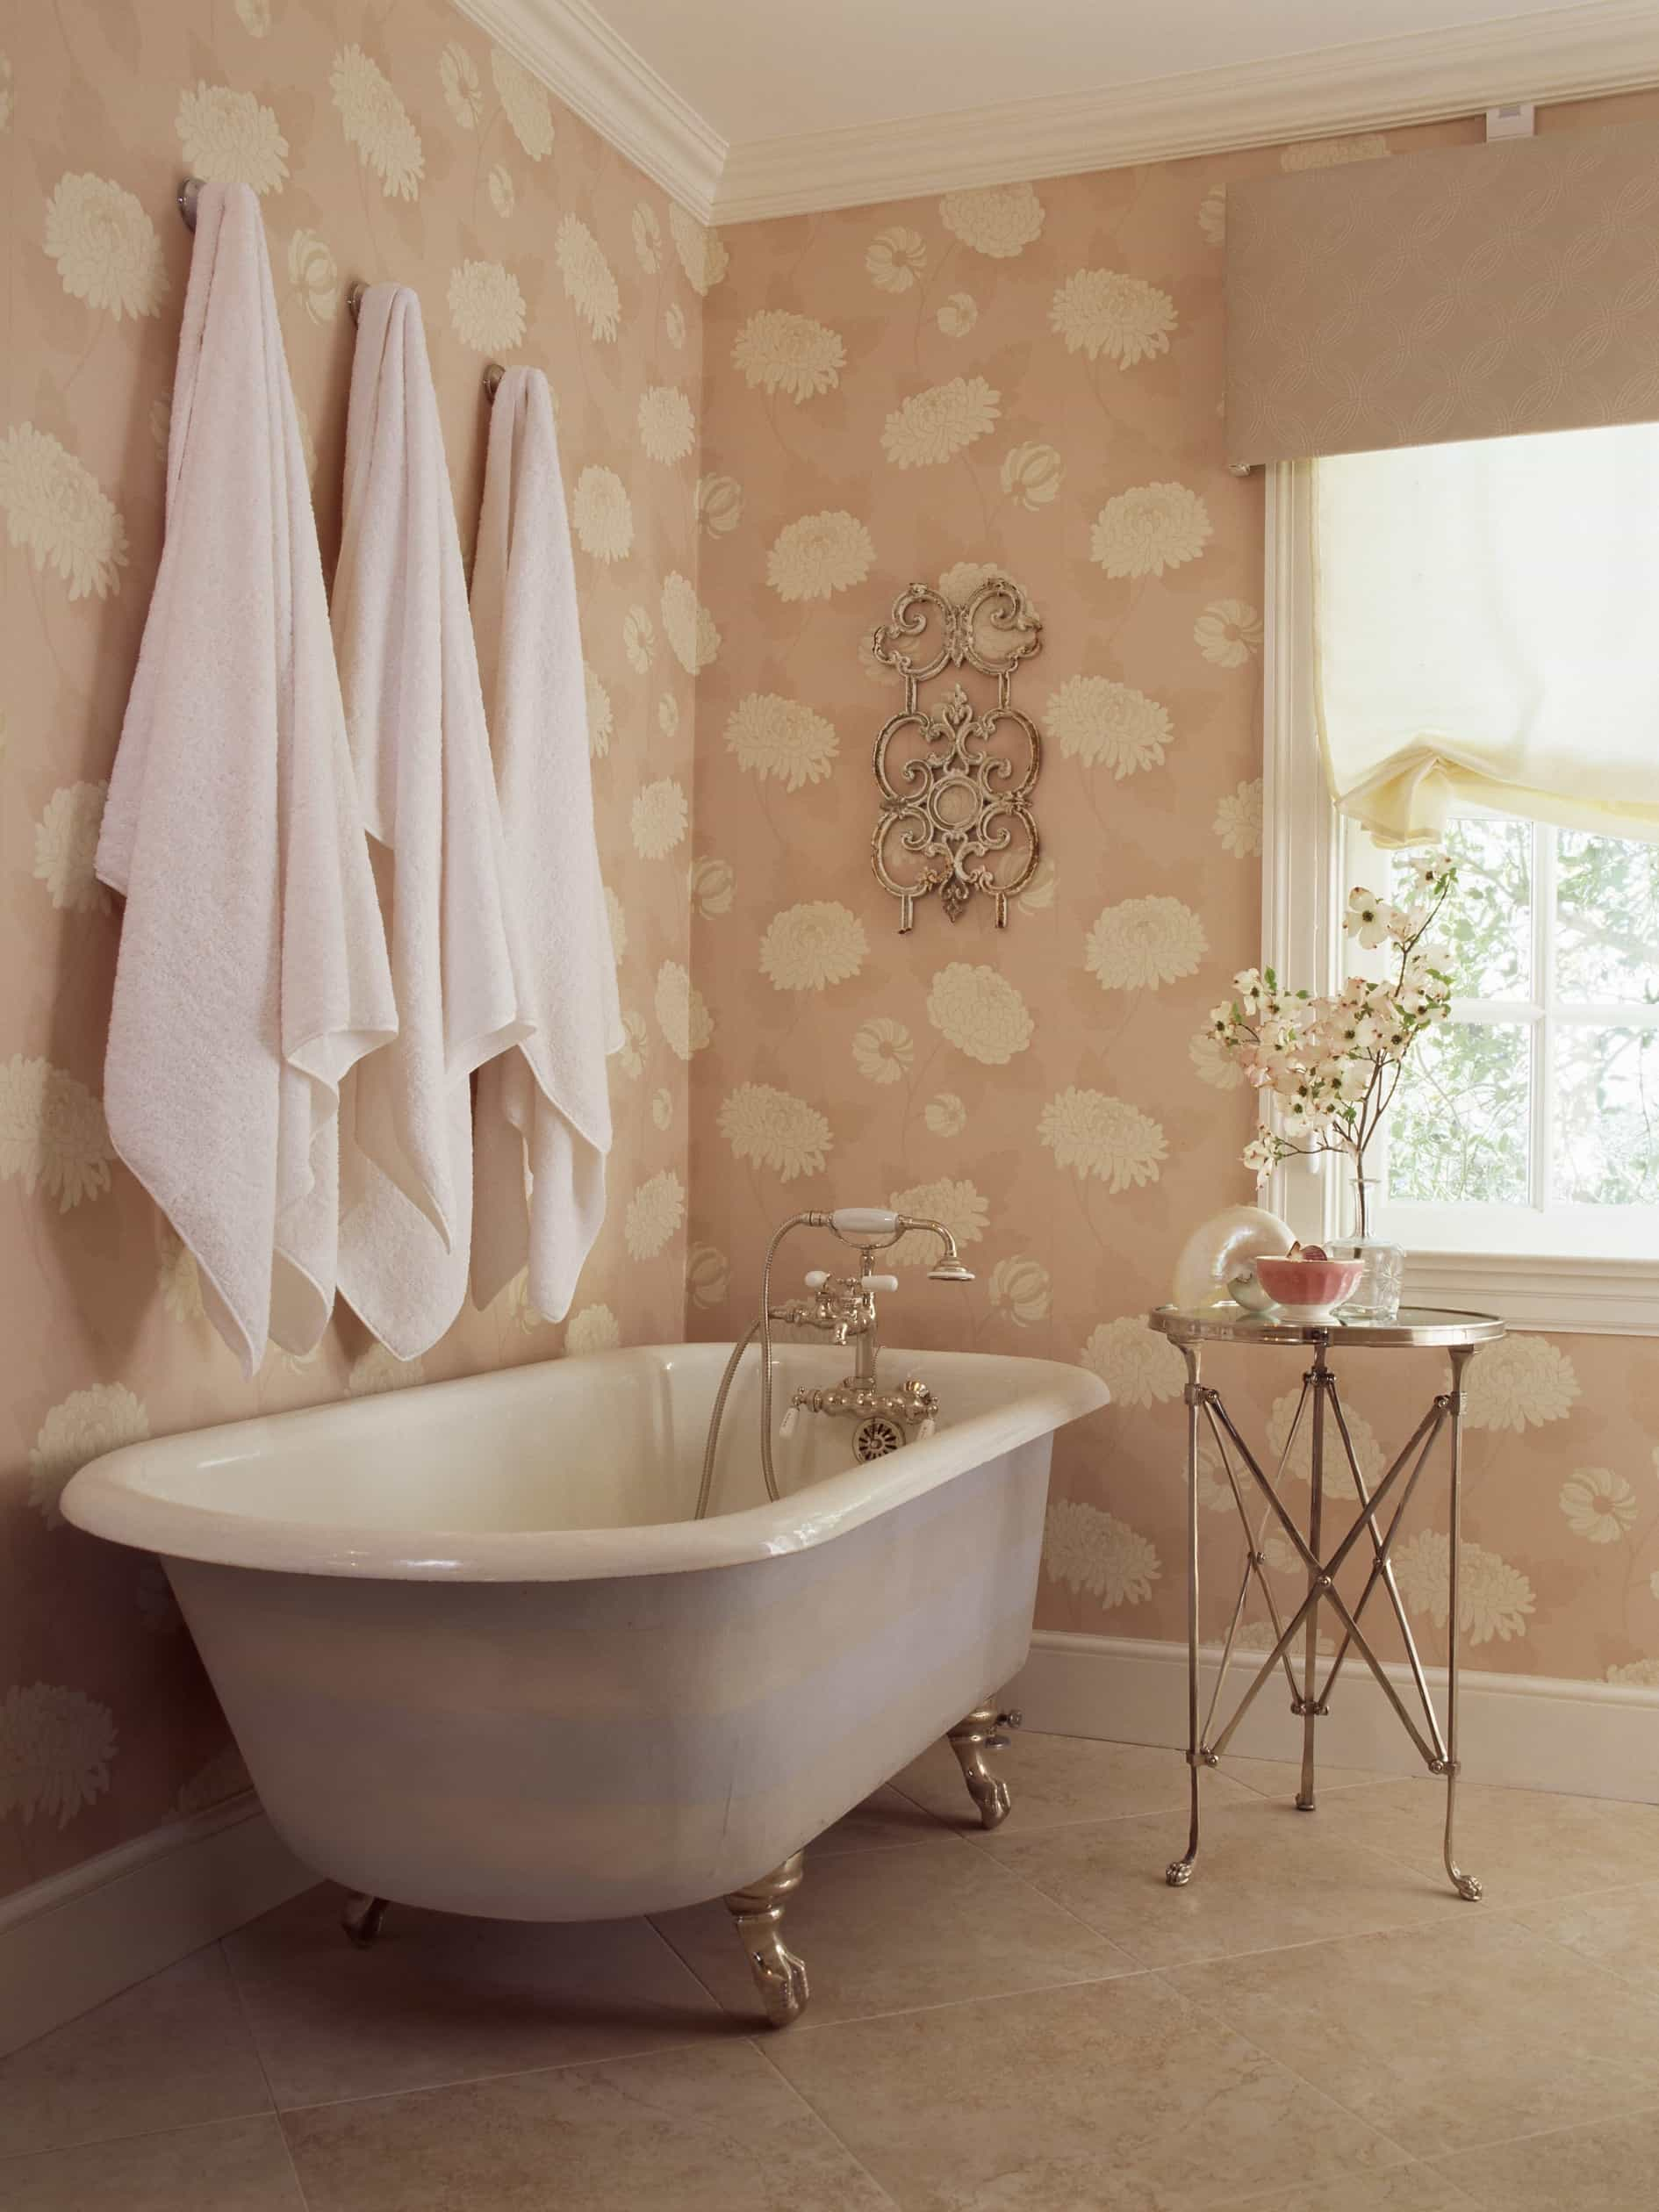 Featured Image of The Claw Foot Tub In Cottage Style Bathroom With Floral Wallpaper